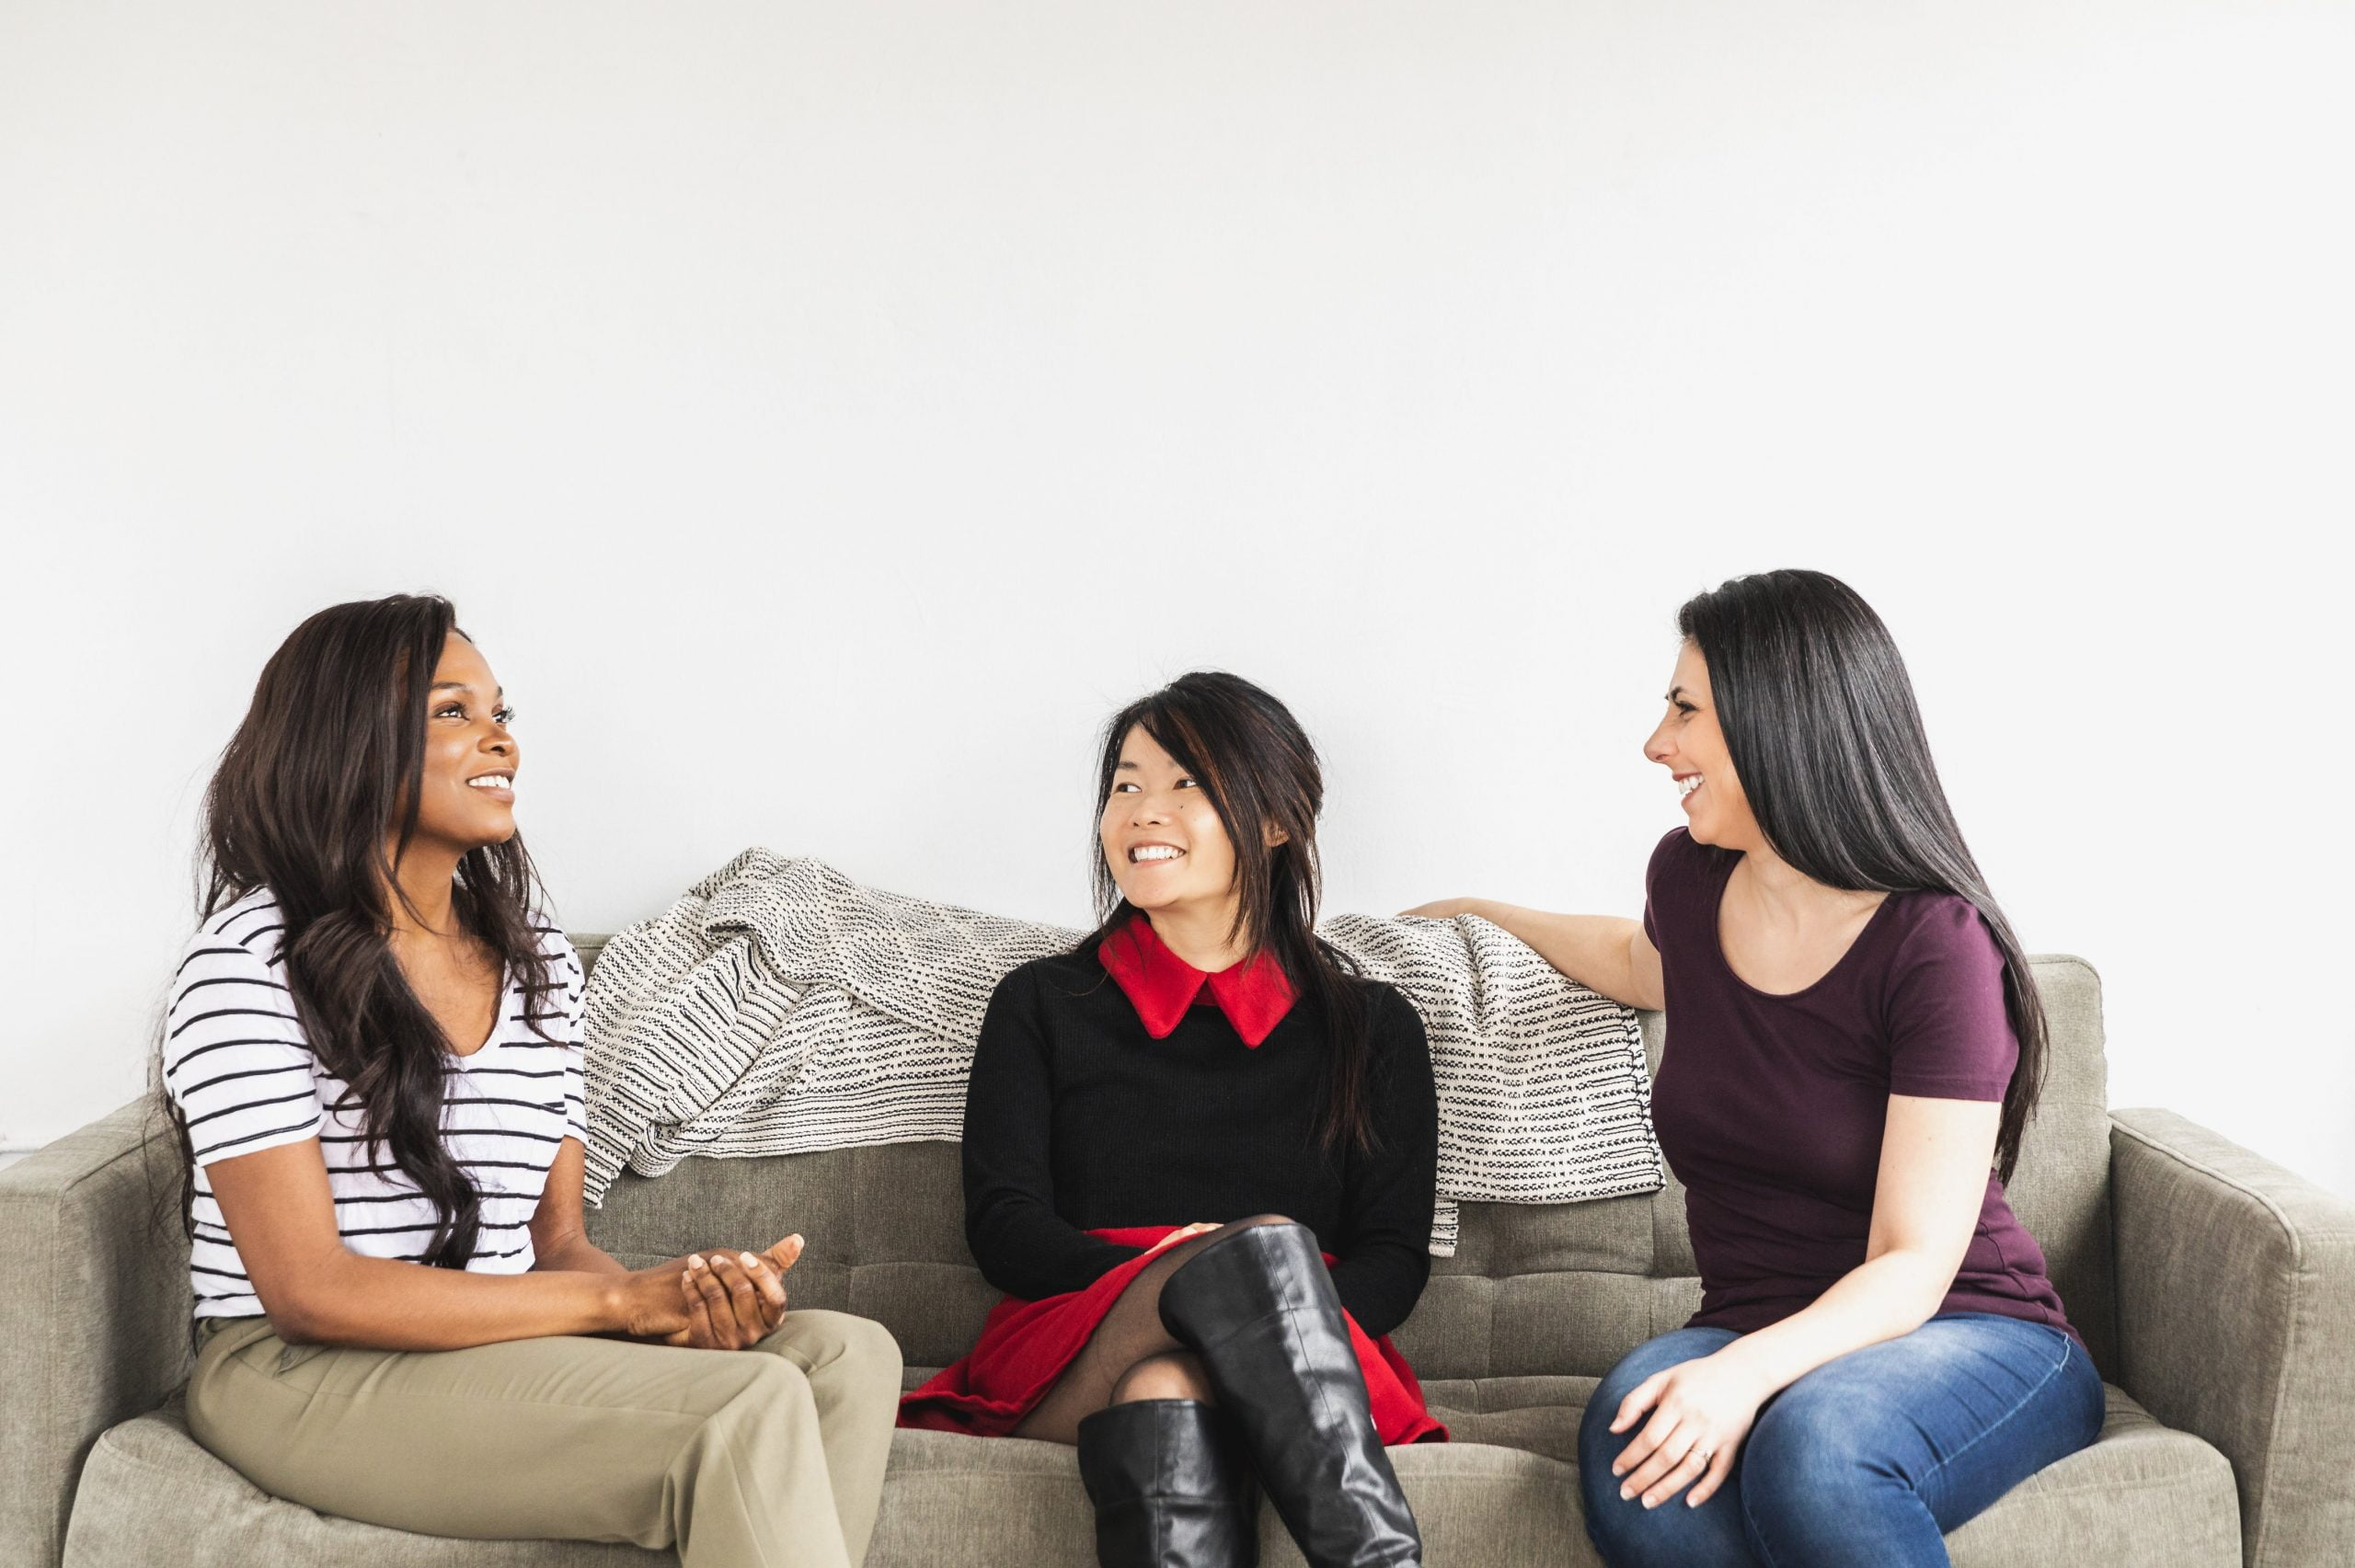 women chatting on a couch